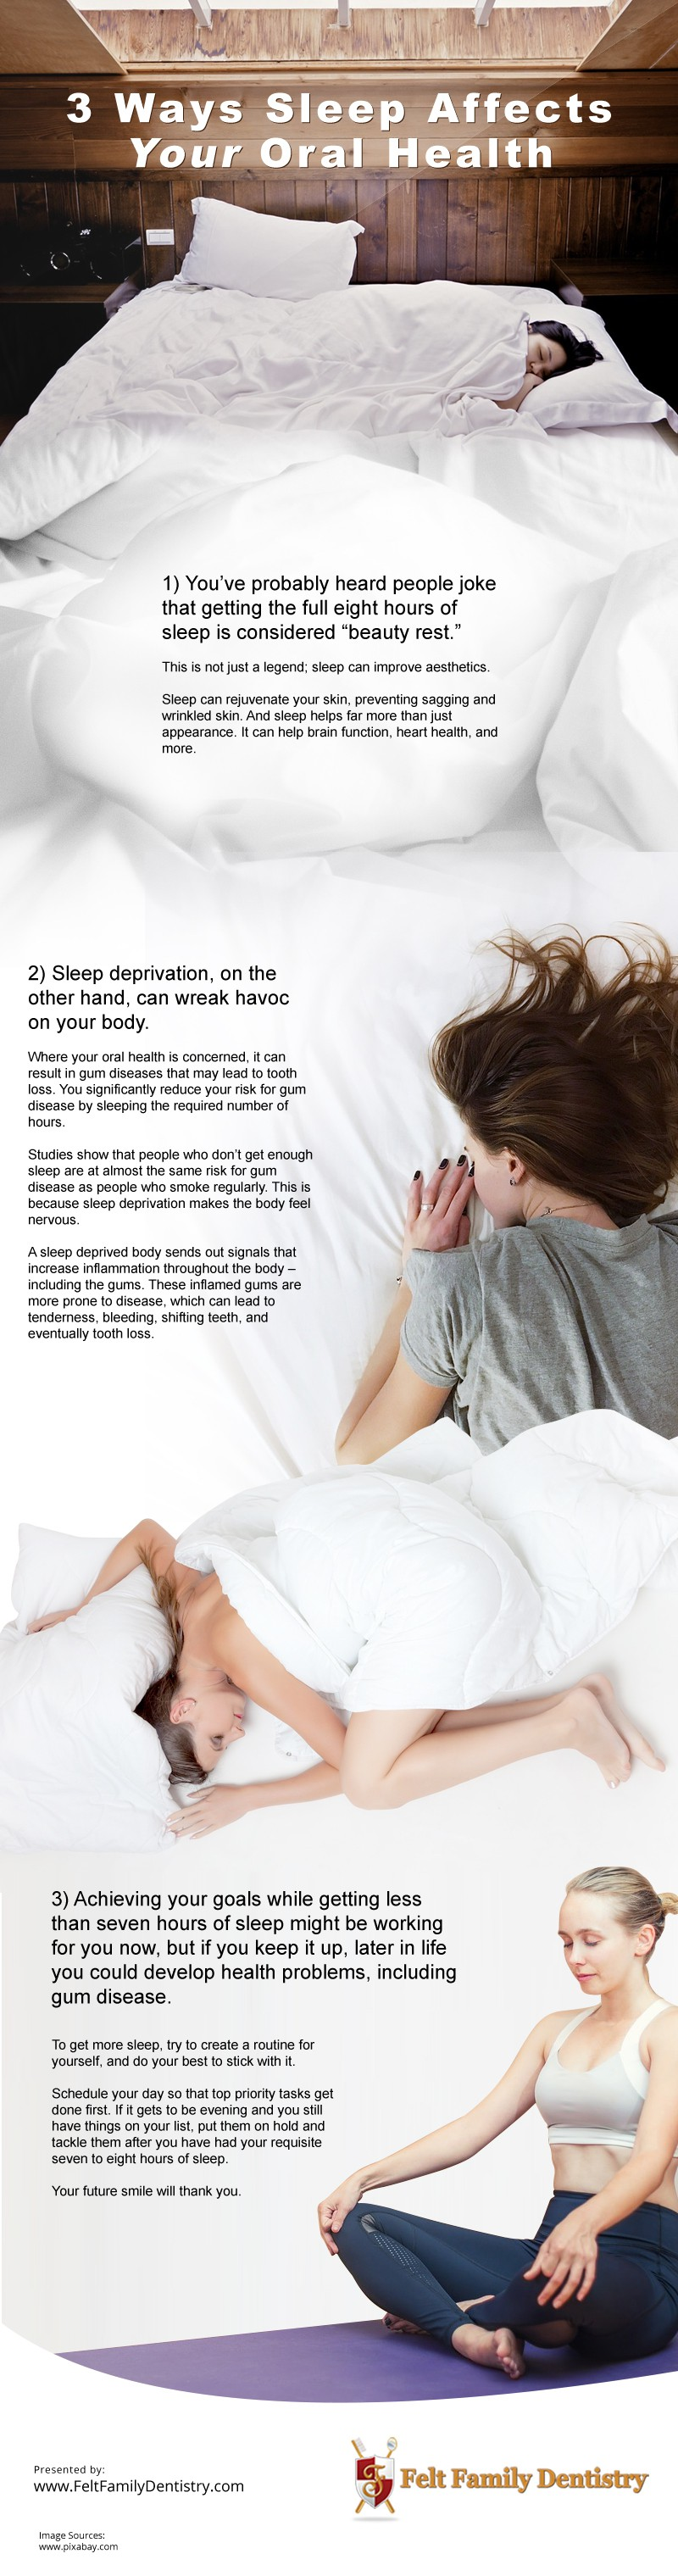 3 Ways Sleep Affects Your Oral Health [infographic]